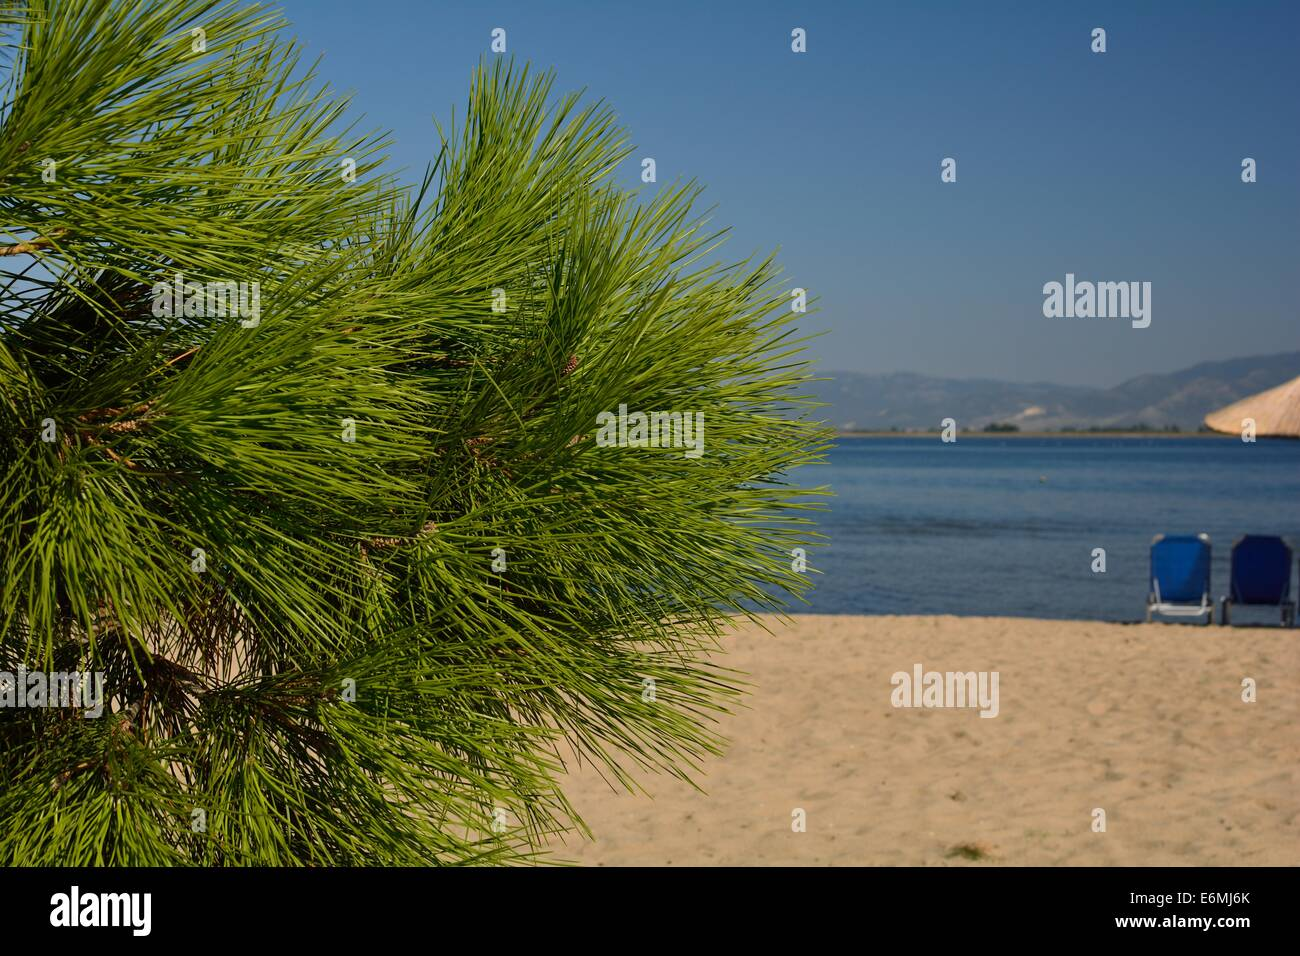 Aleppo Pine on the beach - Stock Image